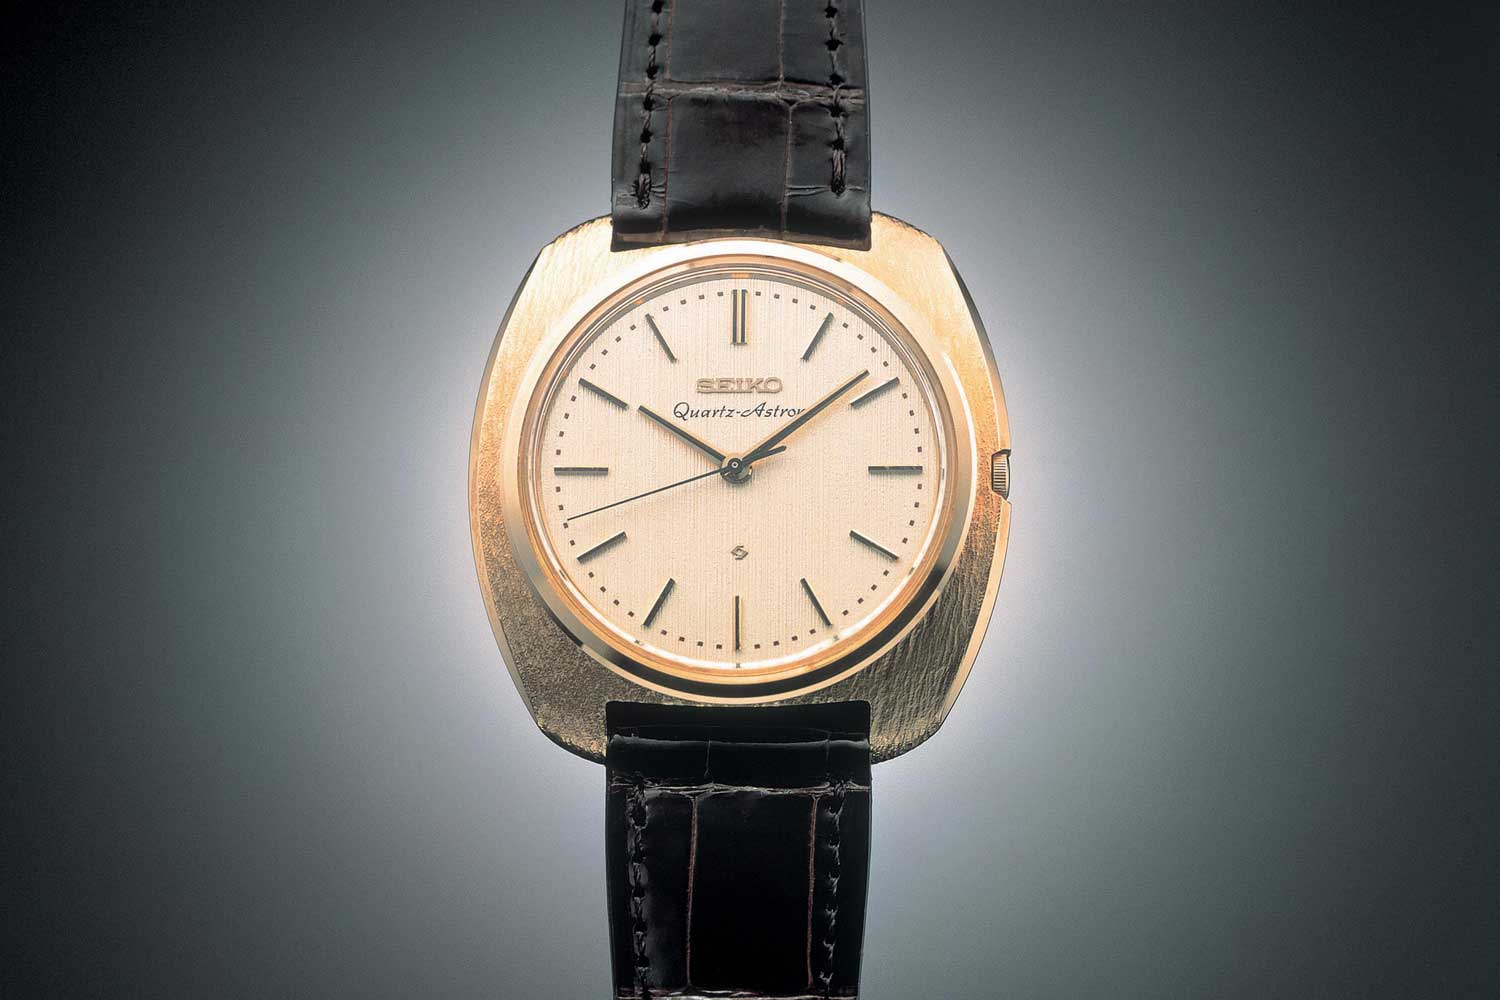 The game-changing Astron in 1969, the first wristwatch powered by a quartz movement